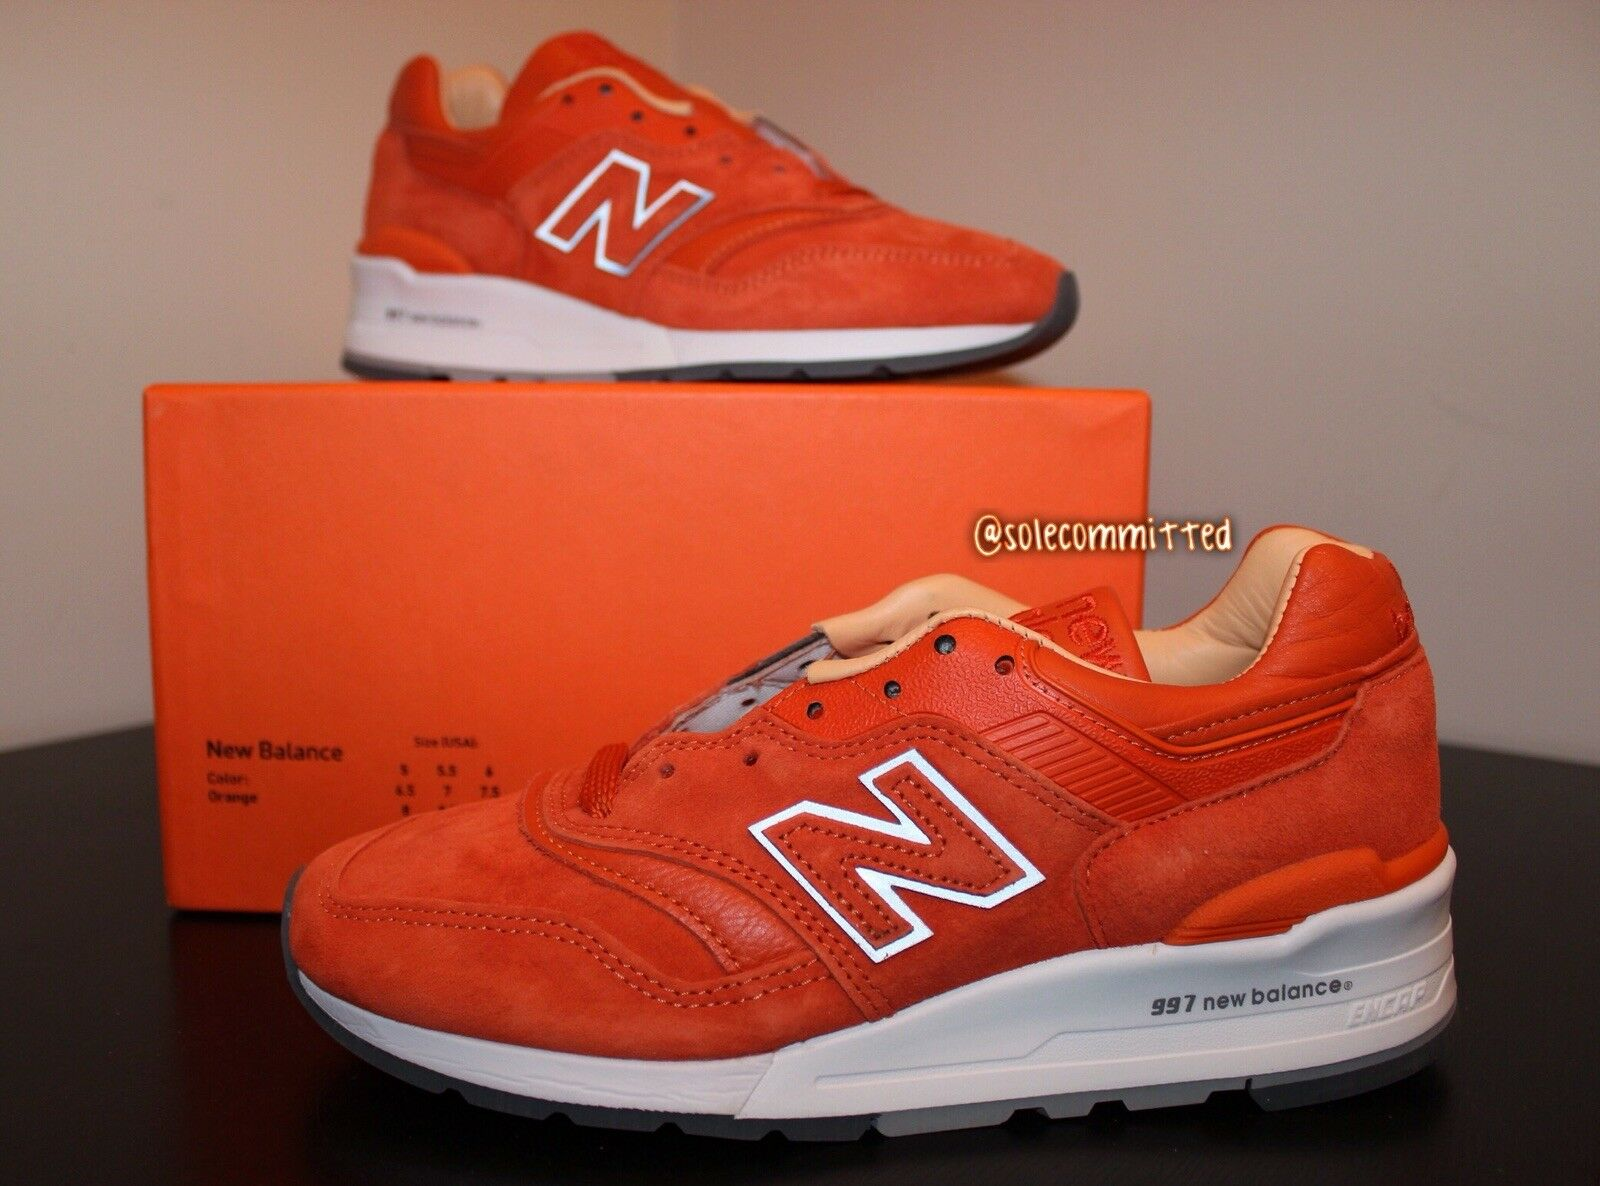 New Balnce 997 Luxary Goods US5 Size5 Special Box Rare BNIB DS